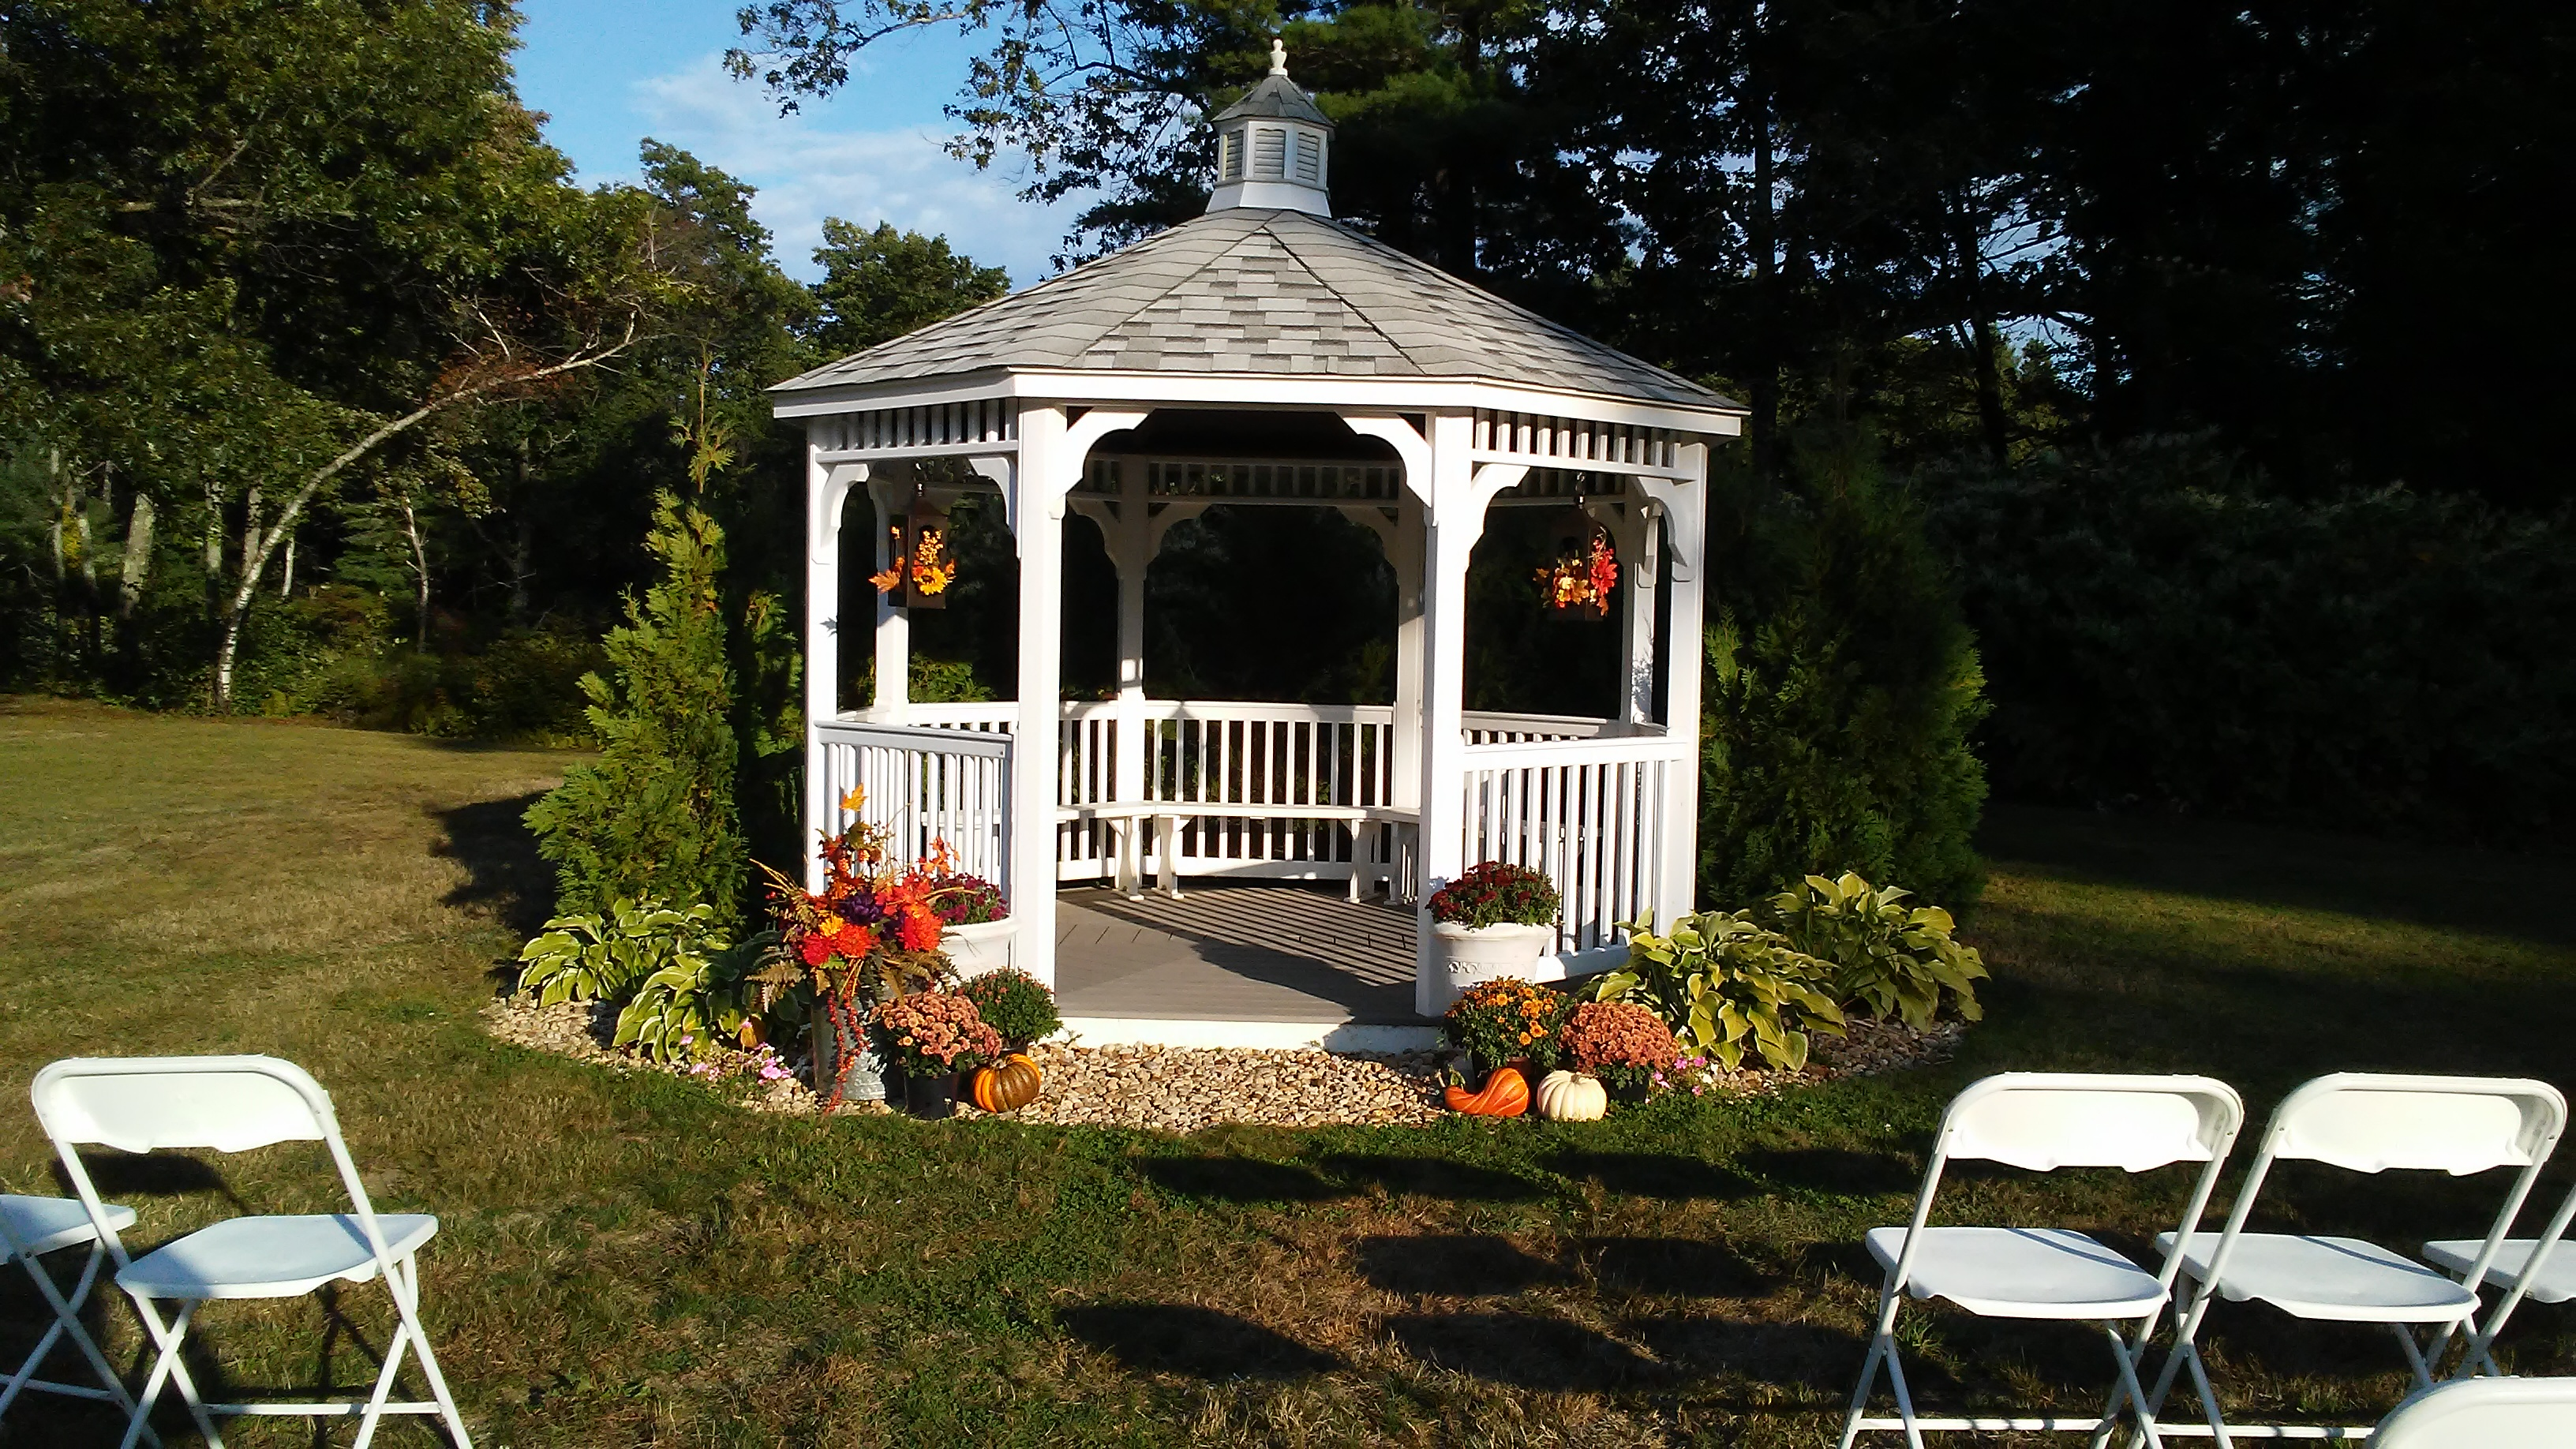 The Gazebo at The 228 in Sterling